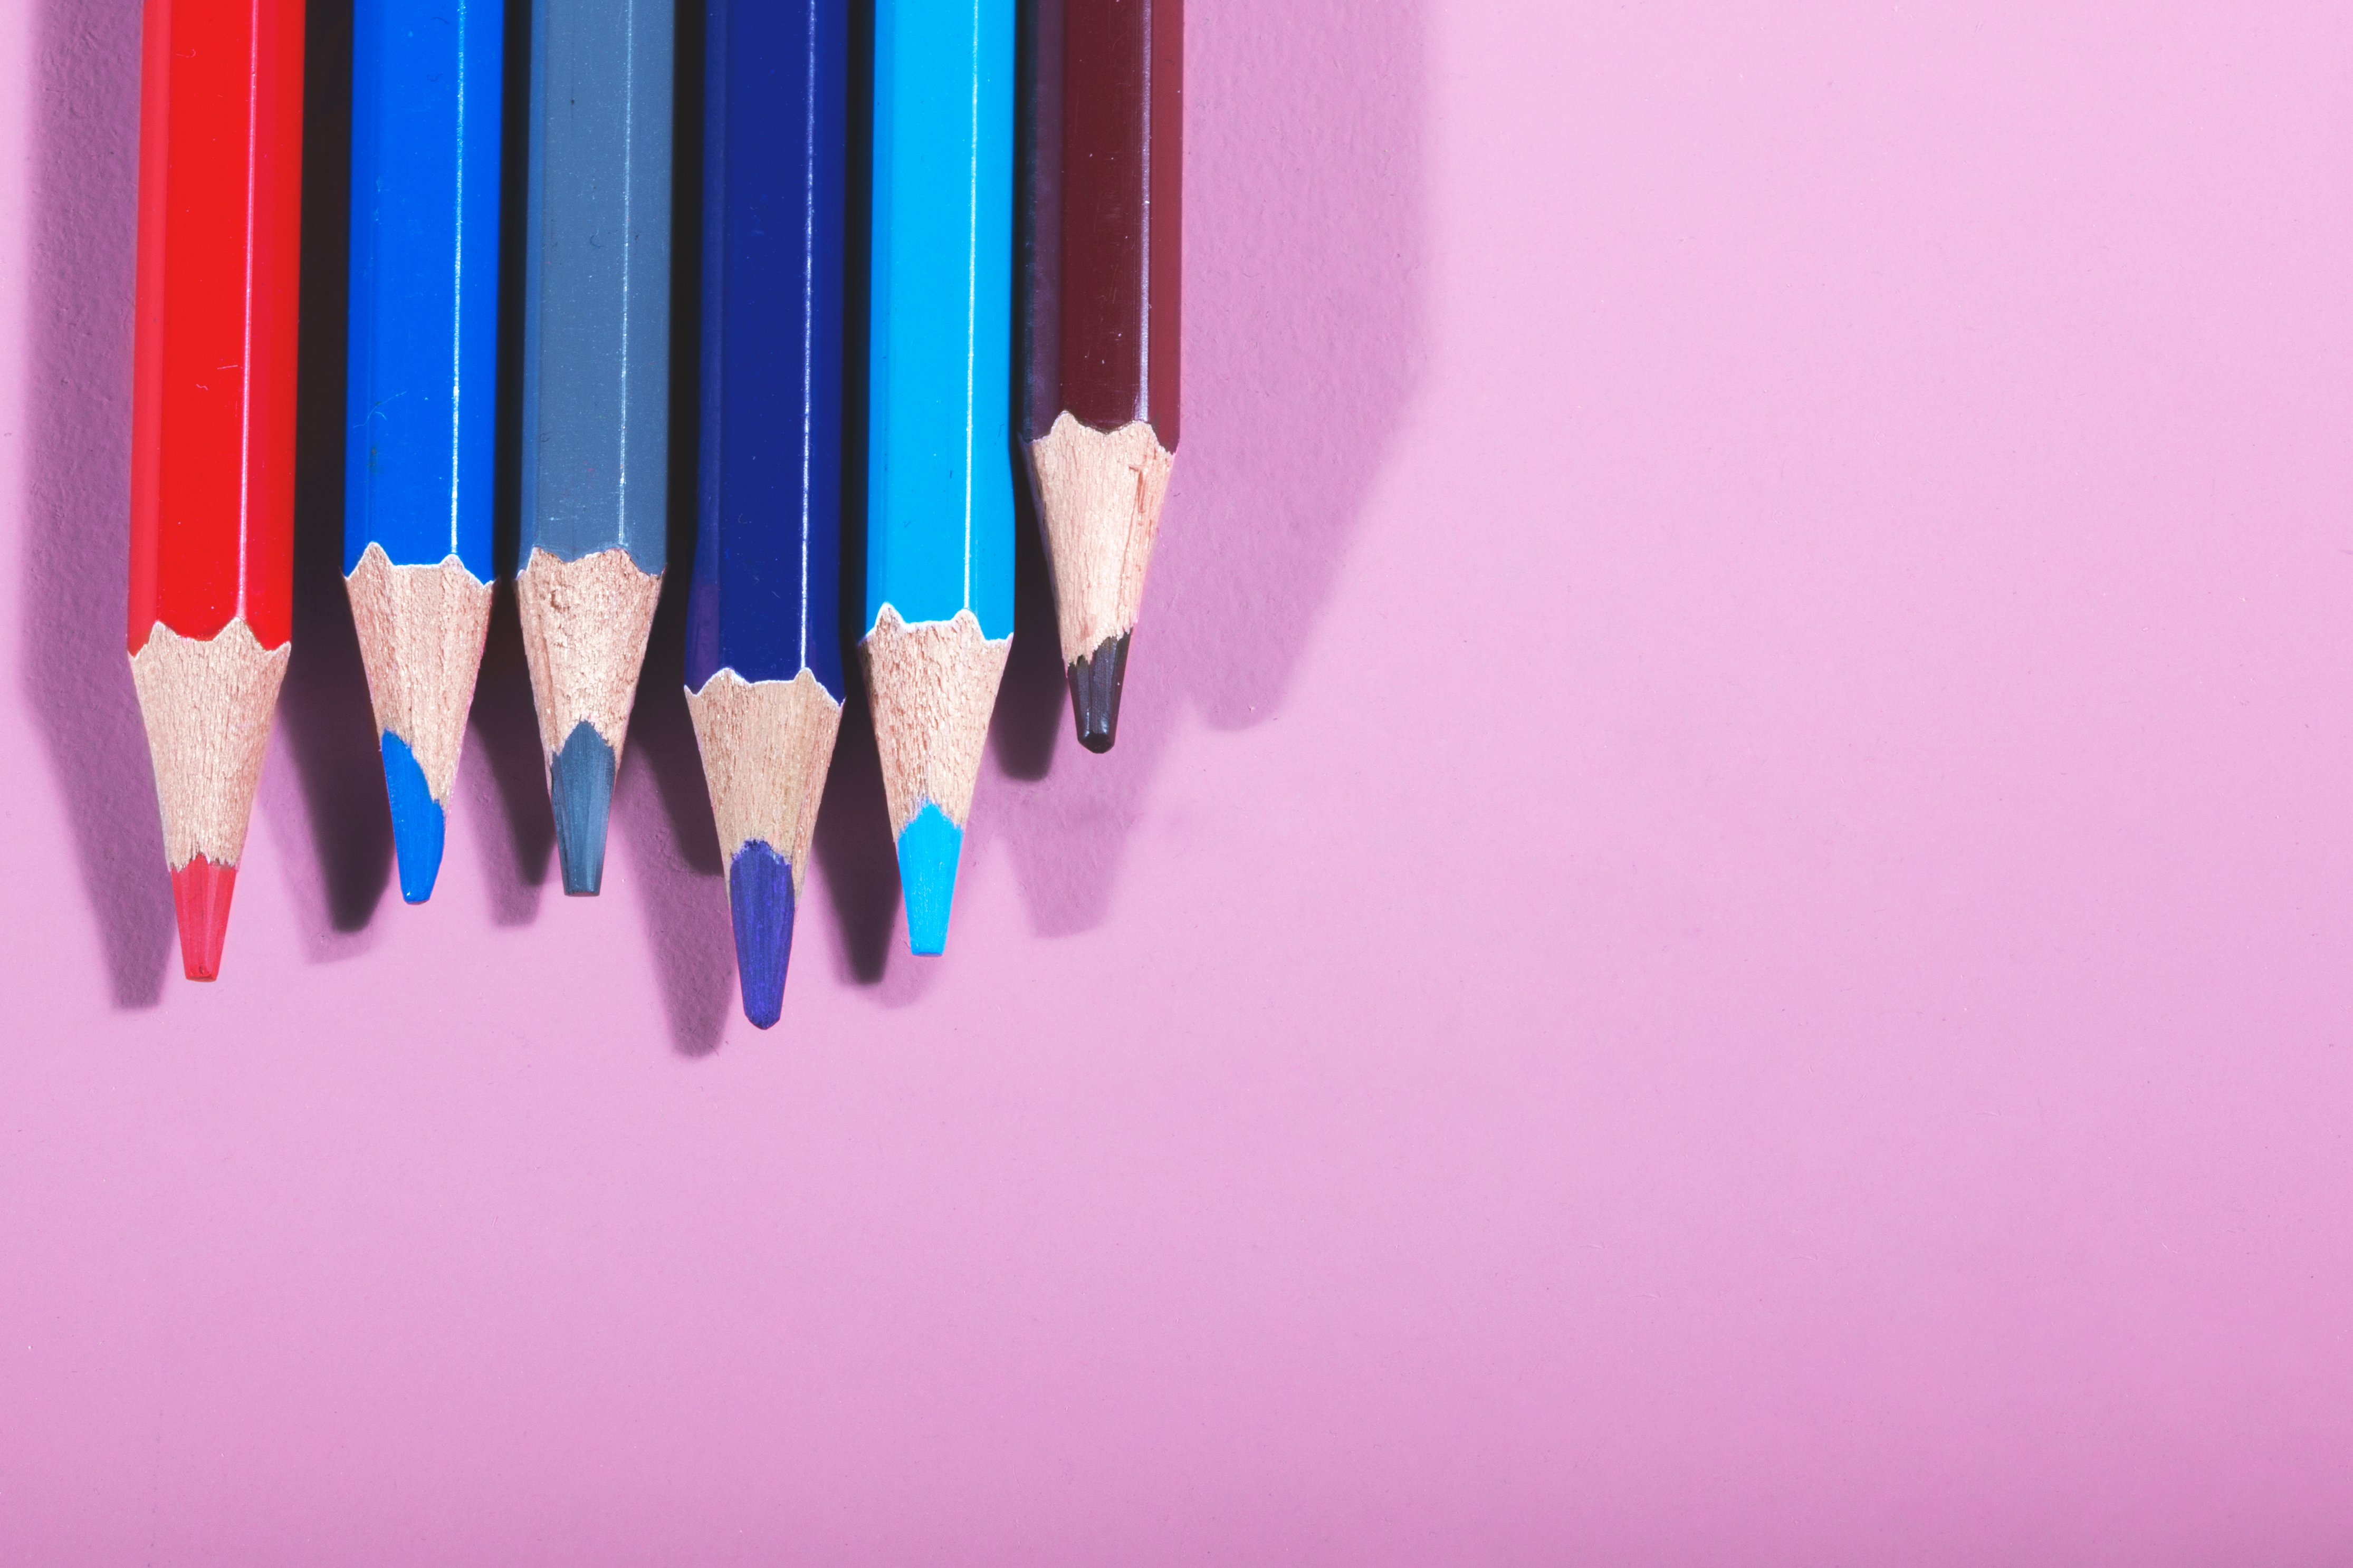 colored-pencils-on-pink